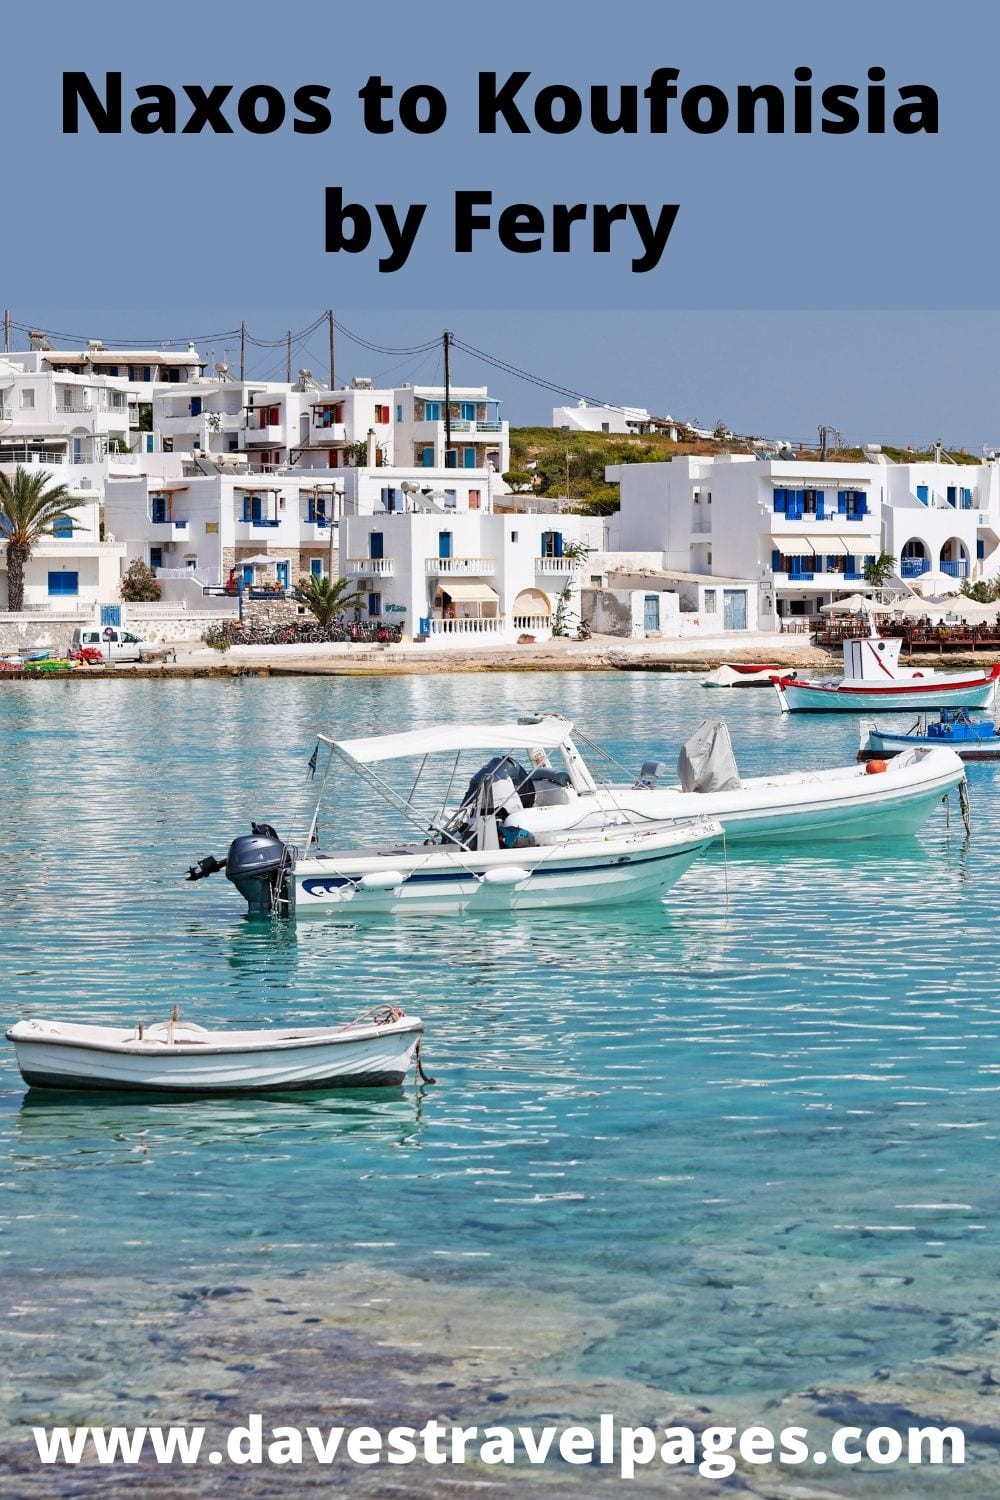 Taking a ferry from Naxos to Koufonisia in Greece